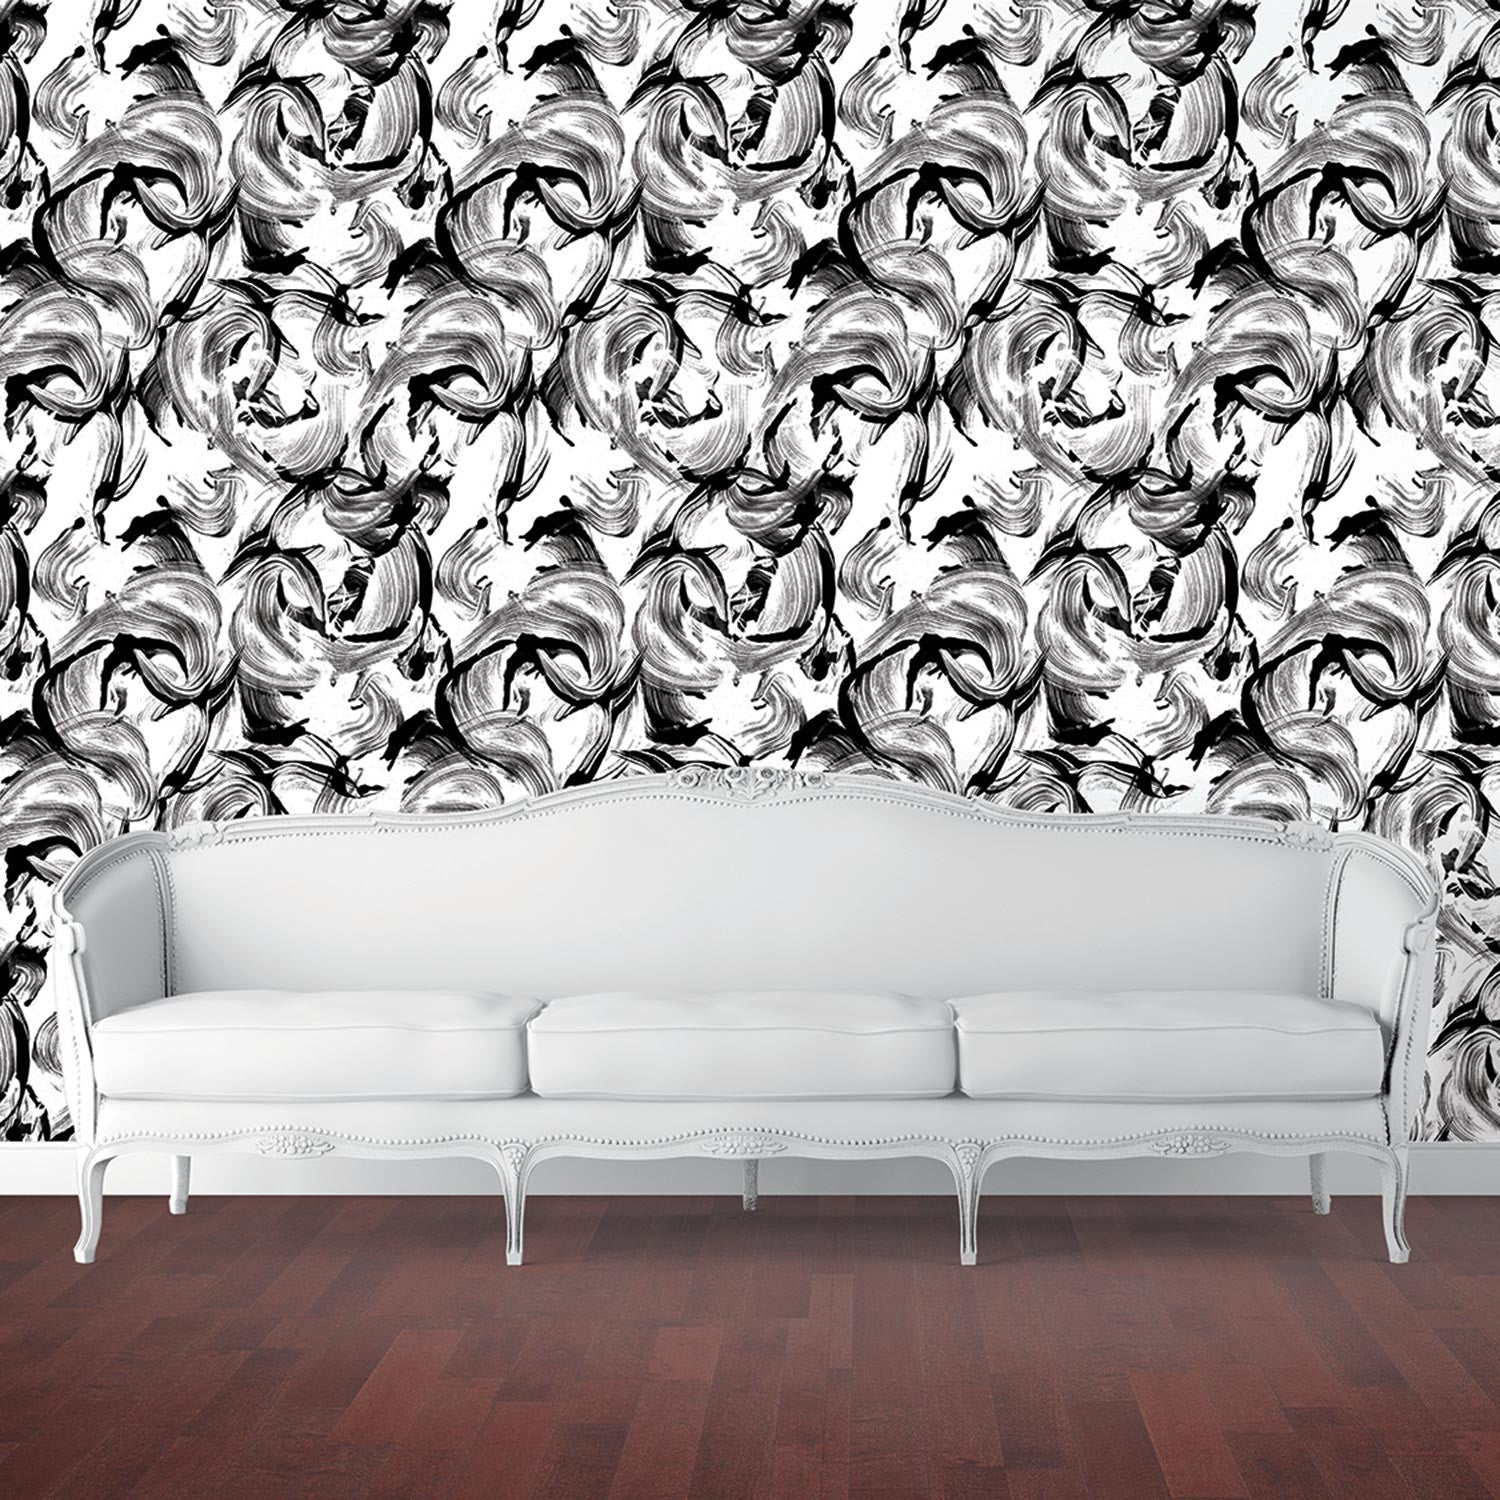 Temporary Wallpaper - L'amour - White and Black